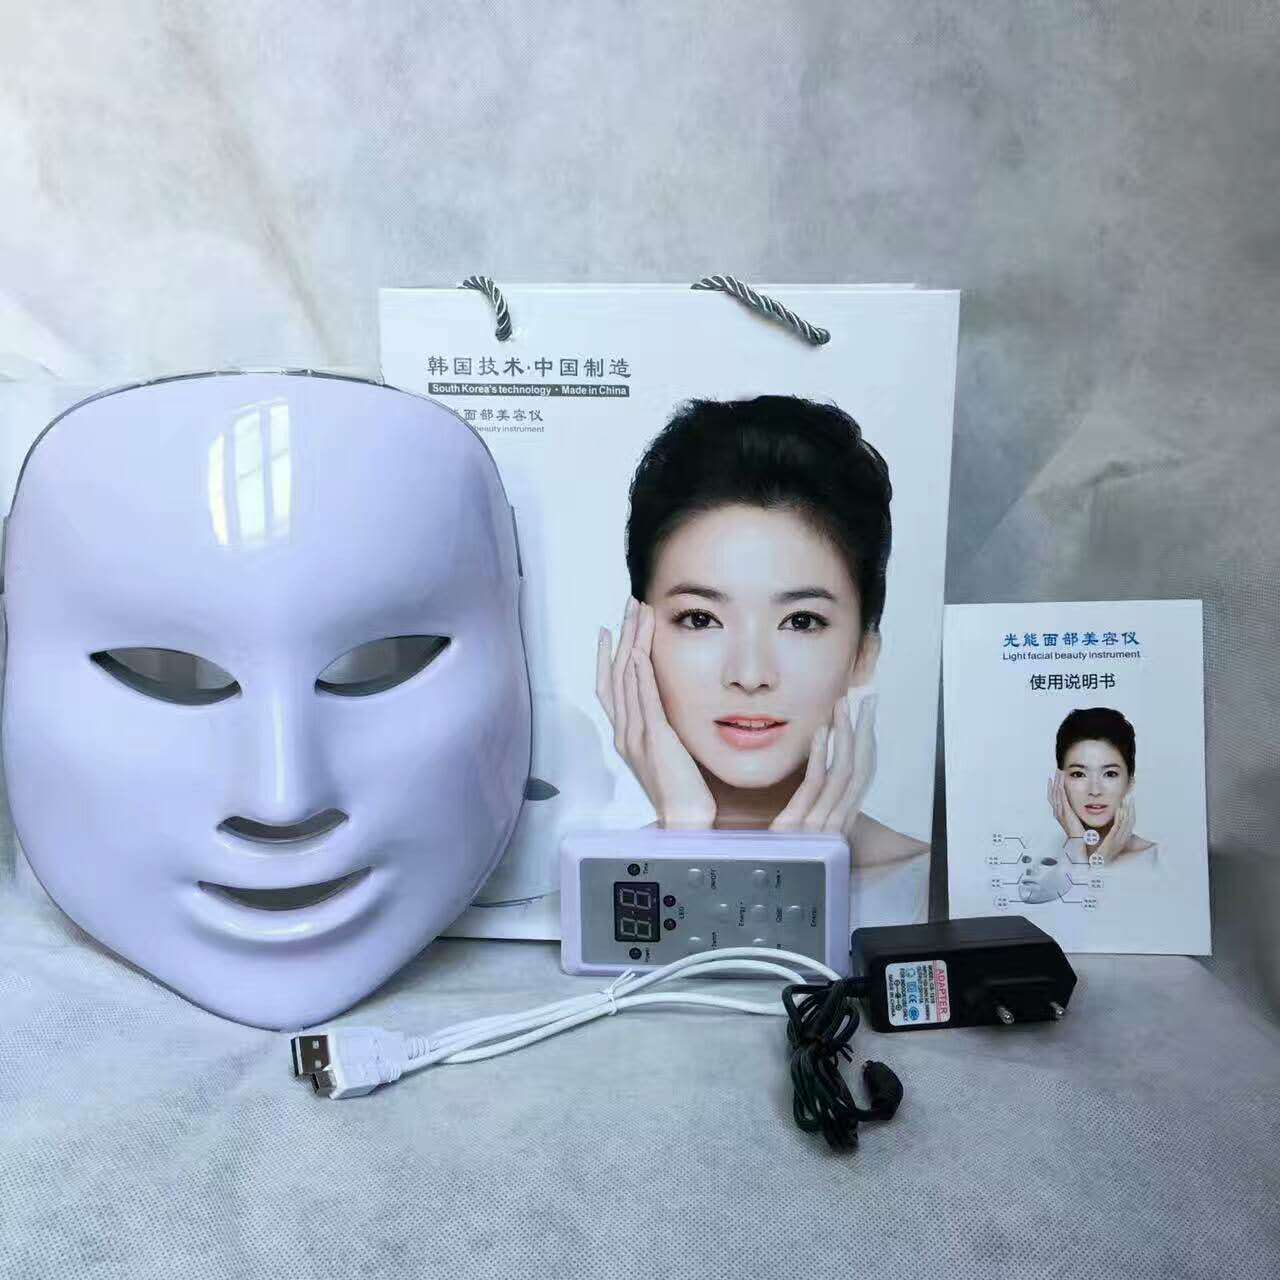 7 Colors Light Photon Led Ipl Pdt Facial Mask Skin Rejuvenation Beauty Therapy Wrinkles , Moisturizing, Nutrition Care7 Colors Light Photon Led Ipl Pdt Facial Mask Skin Rejuvenation Beauty Therapy Wrinkles , Moisturizing, Nutrition Care